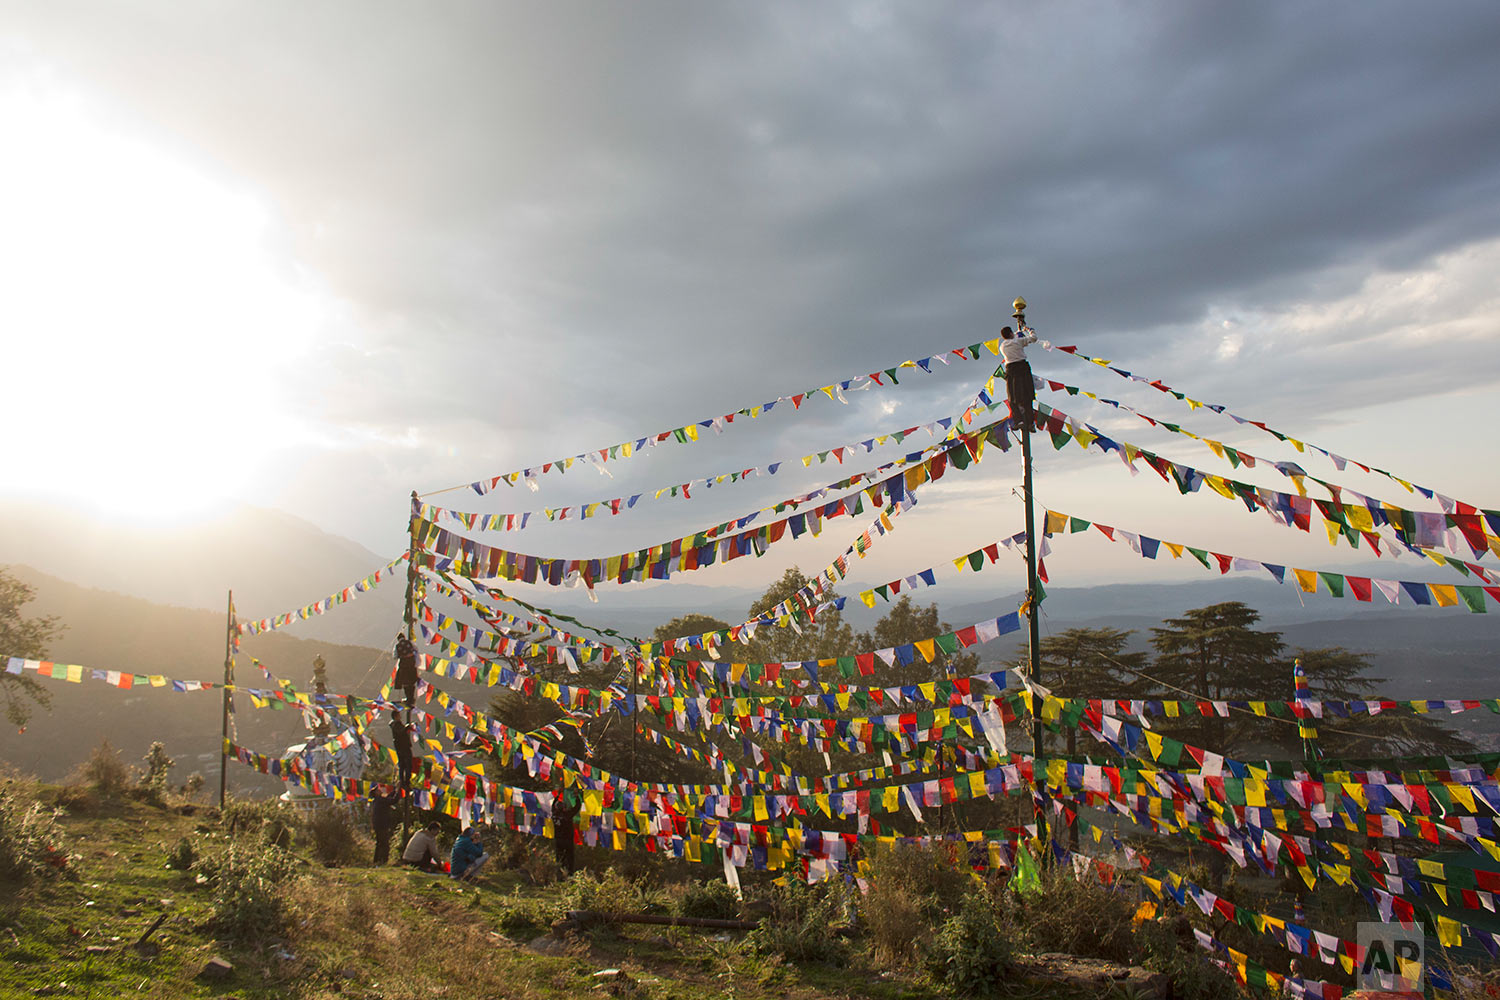 Exile Tibetans climb high on poles to tie multicolored flags with Buddhist prayers printed on them on the third day of the Tibetan New Year called 'Losar' in Dharmsala, India, Wednesday, March 1, 2017. Tibetans believe that the prayer flags representing the five elements: earth, fire, sky, water and wind, spread prayers on wind. (AP Photo/Ashwini Bhatia)